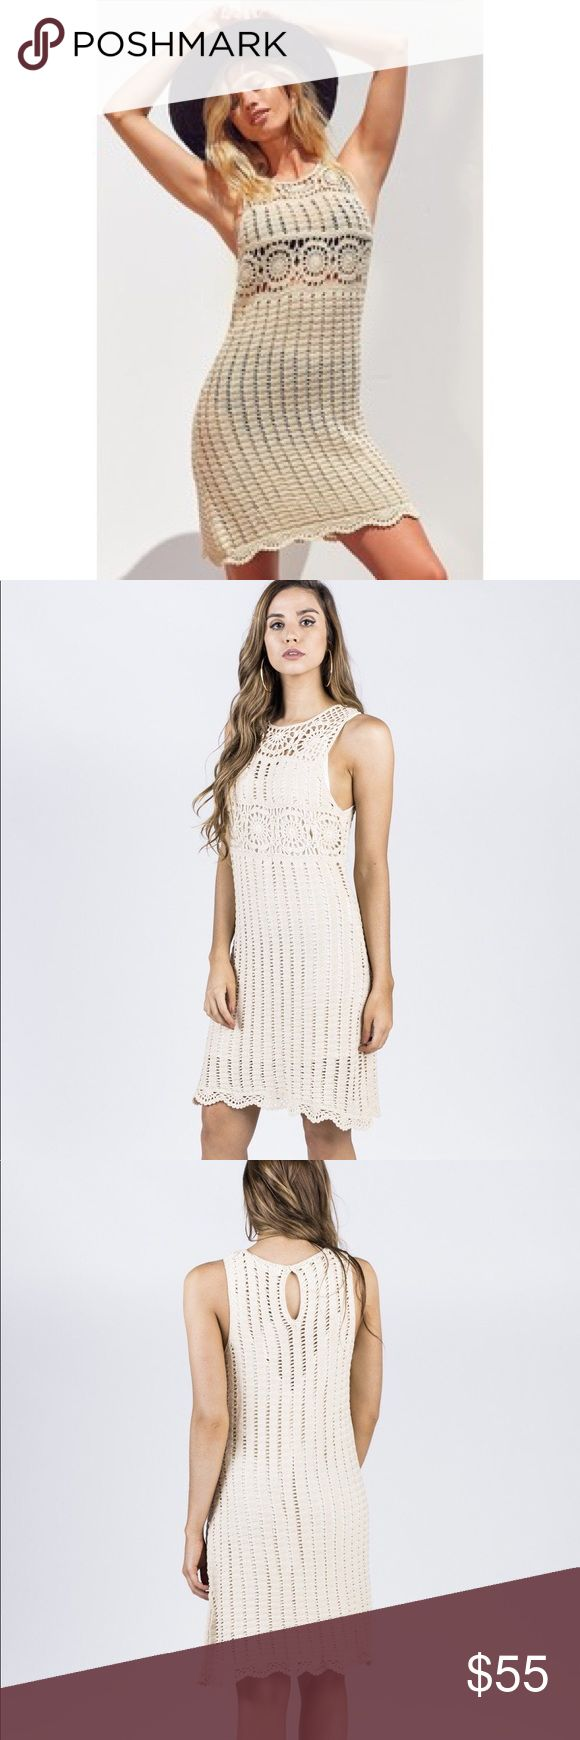 NWT🦋Festival Boho Gypsy Crochet Dress Awesome festival boho gypsy crochet dress, perfect to dress up or down! Armpit to armpit is approximately 16 inches, length is approximately 39 inches, has Slip that can be worn with or without!   Festival boho bohemian gypsy weekend wedding vacation hippie vibes Dresses